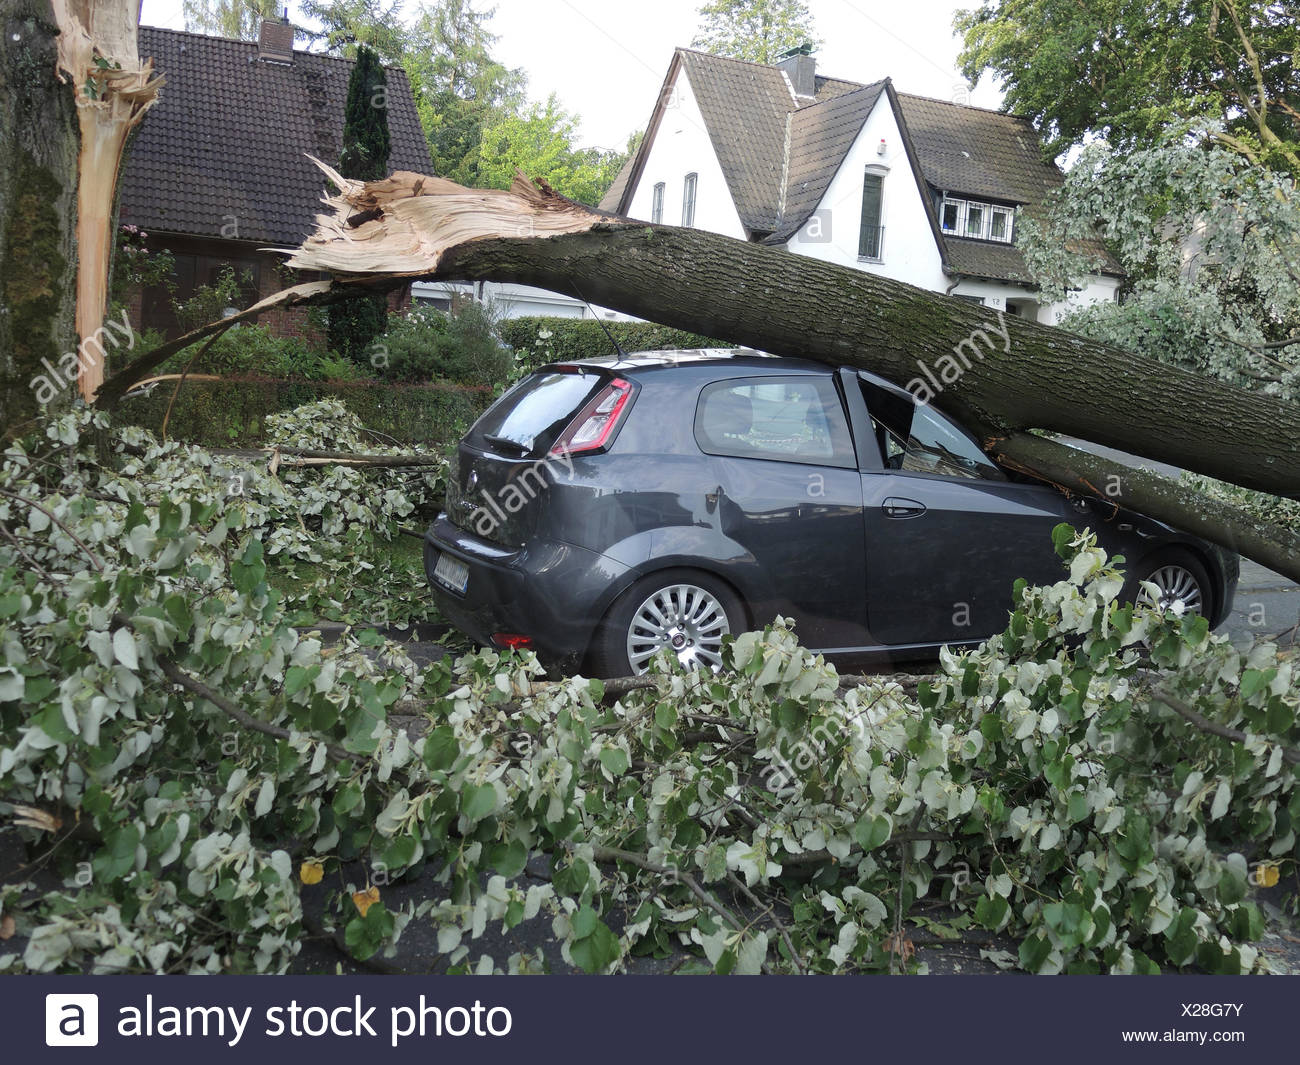 tree fallen on a parked car, damages by storm front Ela at 2014-06-09, Germany, North Rhine-Westphalia, Ruhr Area, Bochum Stock Photo